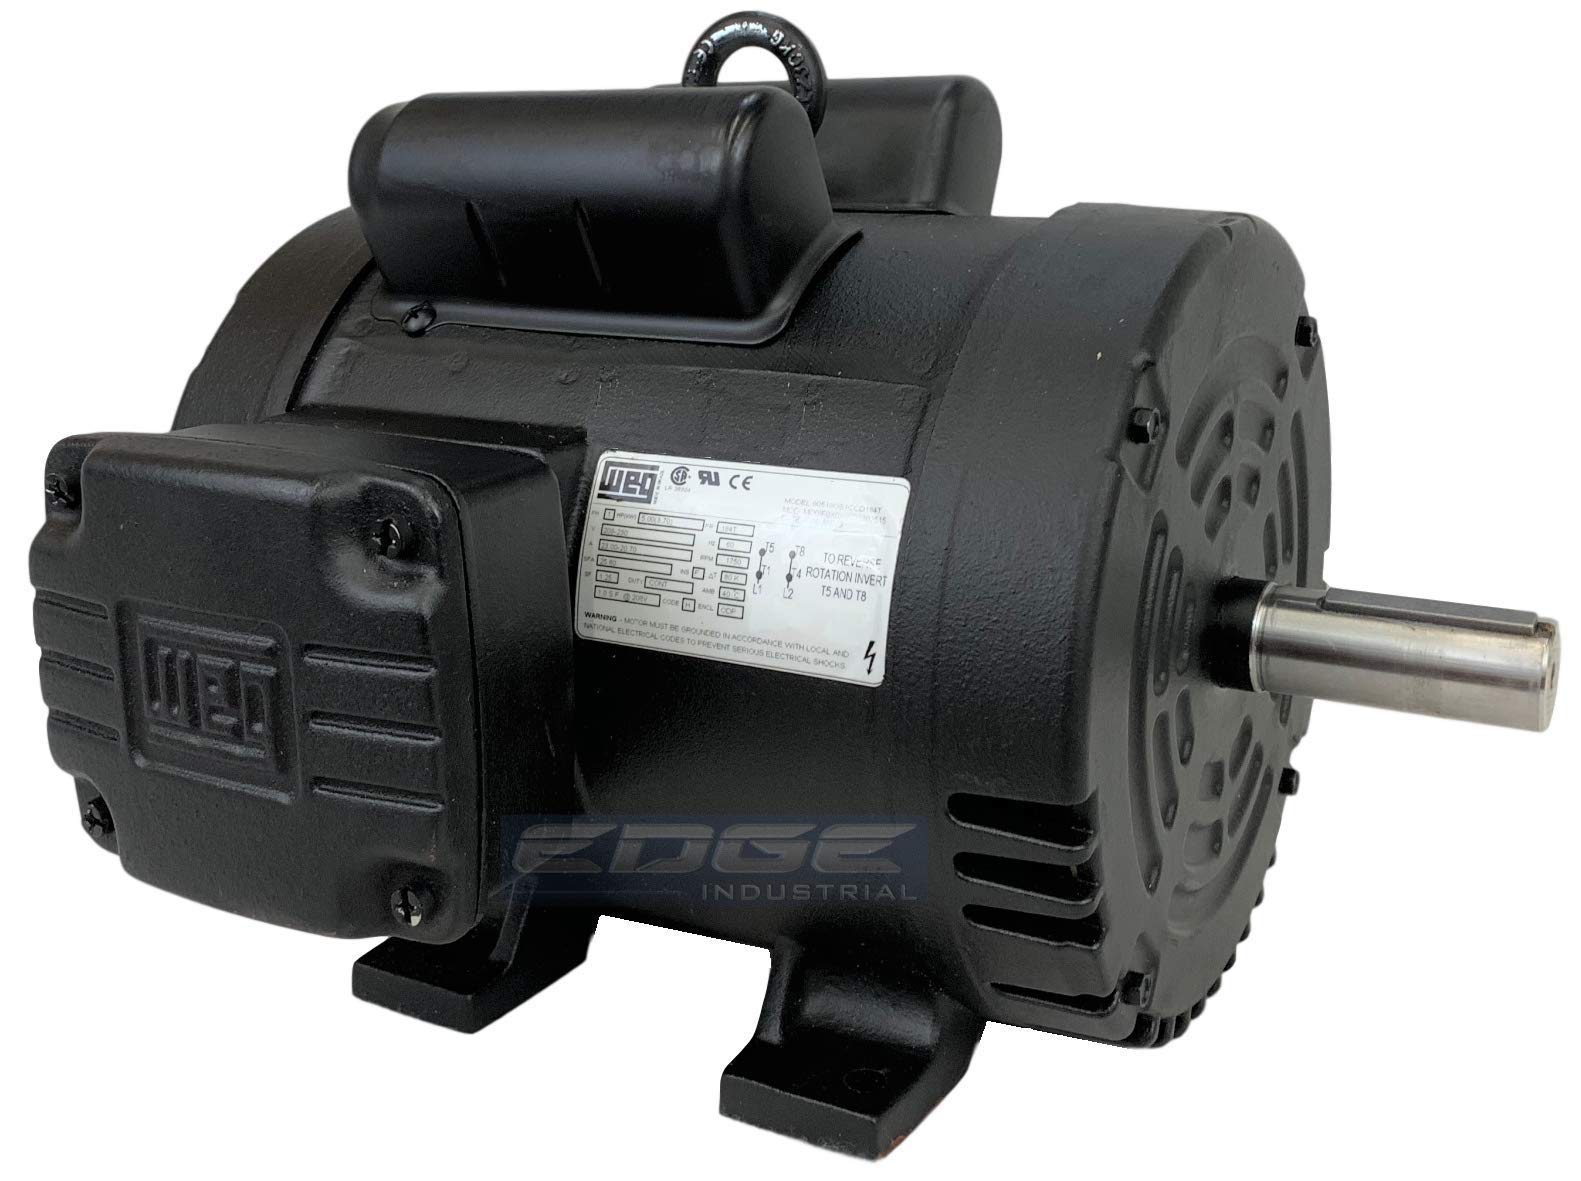 NEW 5HP 184T FRAME WEG ELECTRIC MOTOR FOR AIR COMPRESSOR 1750 RPM 230V 21.5 AMP by WEG (Image #1)